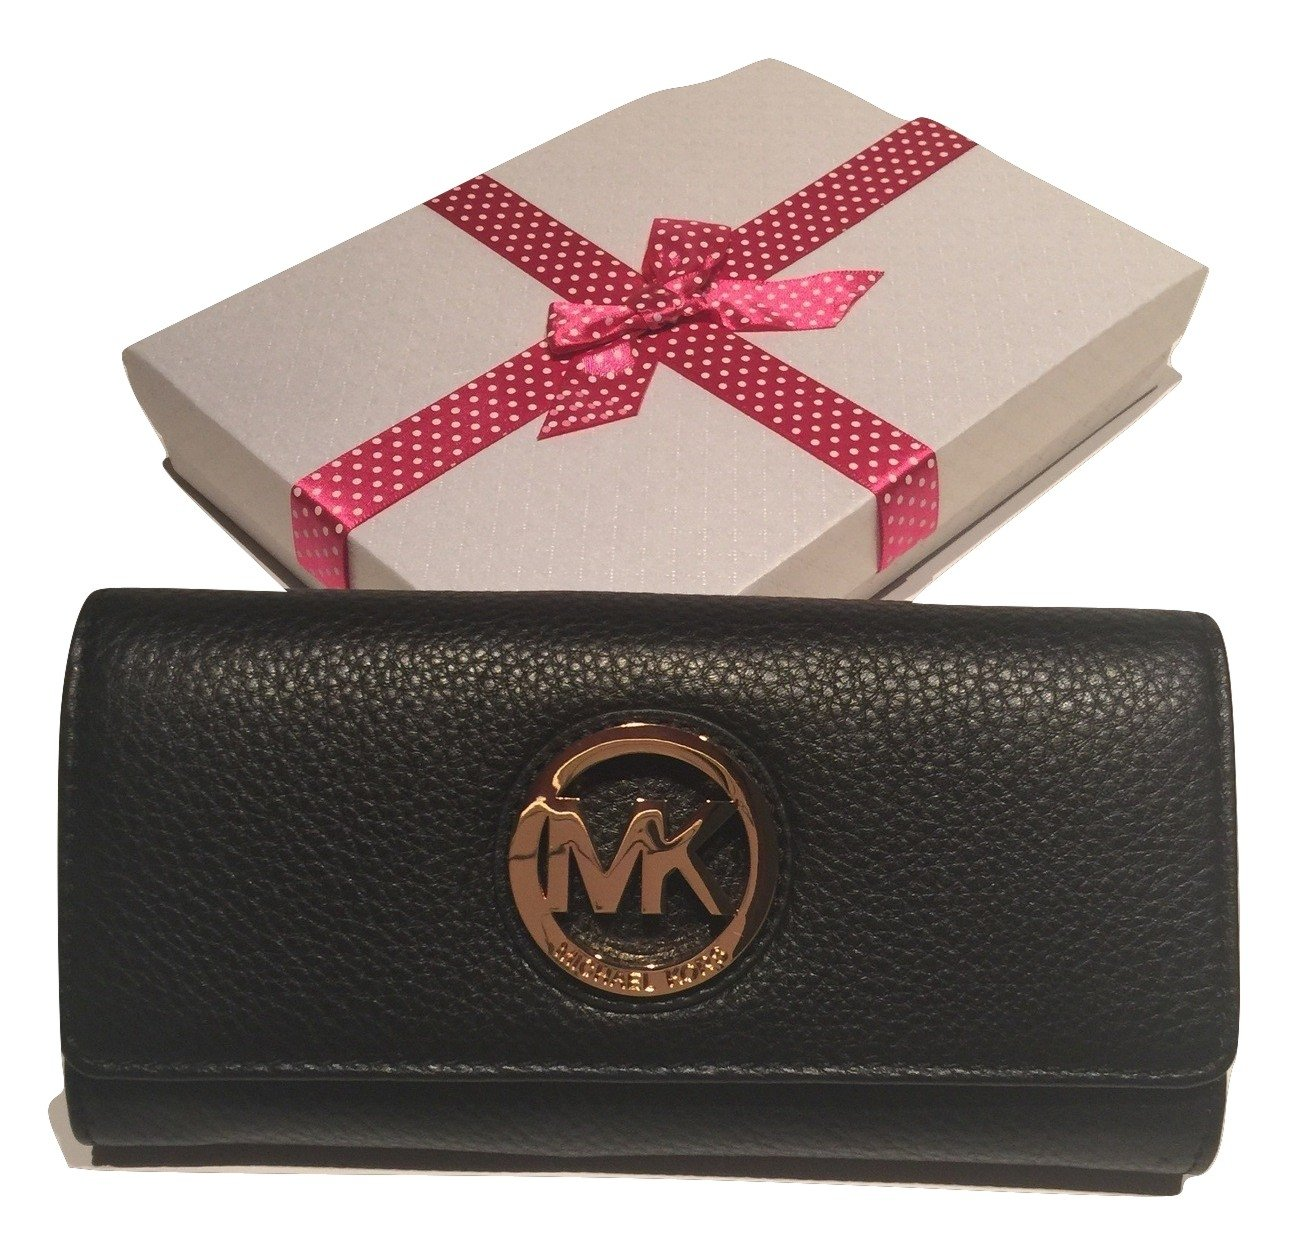 Michael Kors Fulton Flap Leather Clutch Wallet with Gift Box (Black)